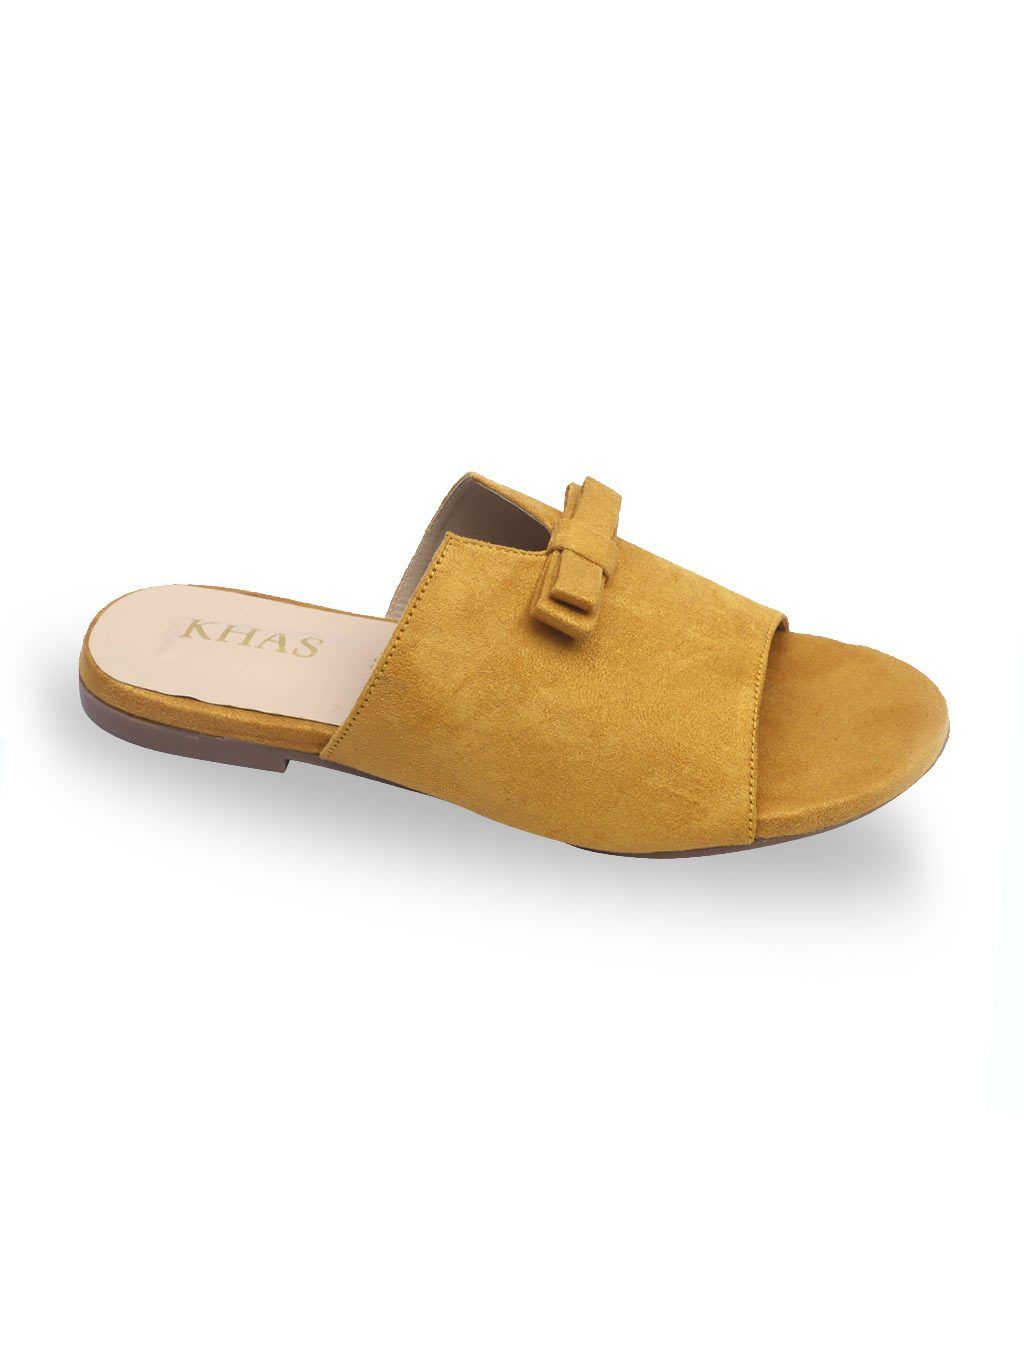 Casual Slipper SP 104 Shoes Summer Edition 1 FASSHOLAD